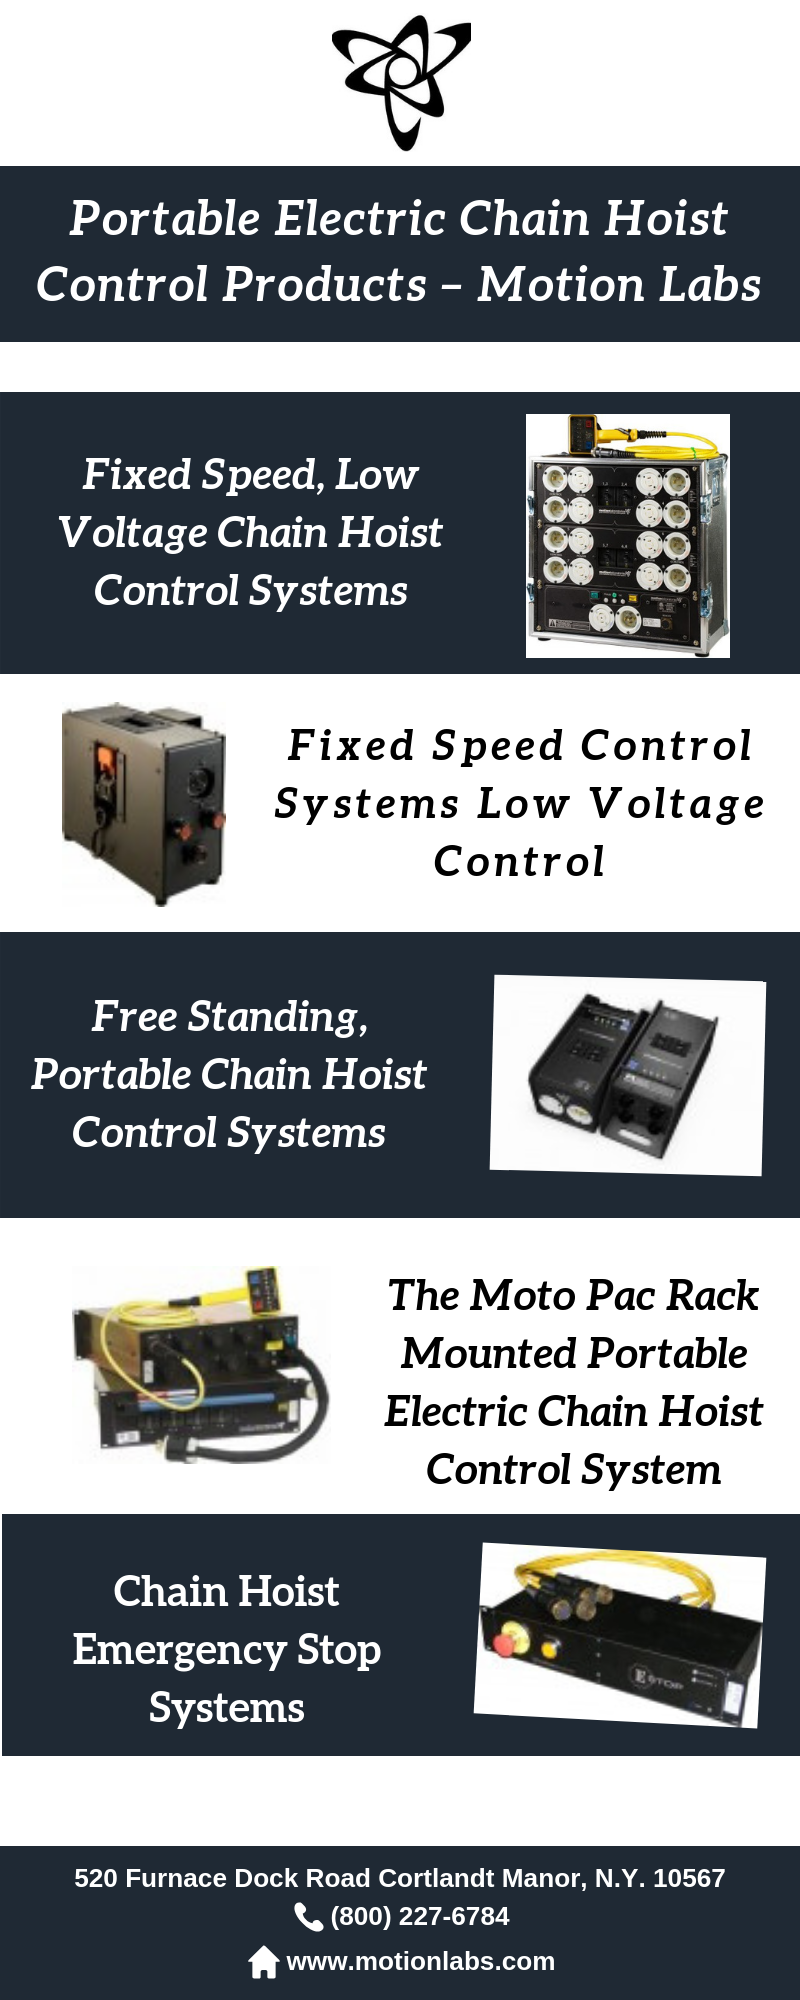 Motion Lab electric chain hoist control products are safe